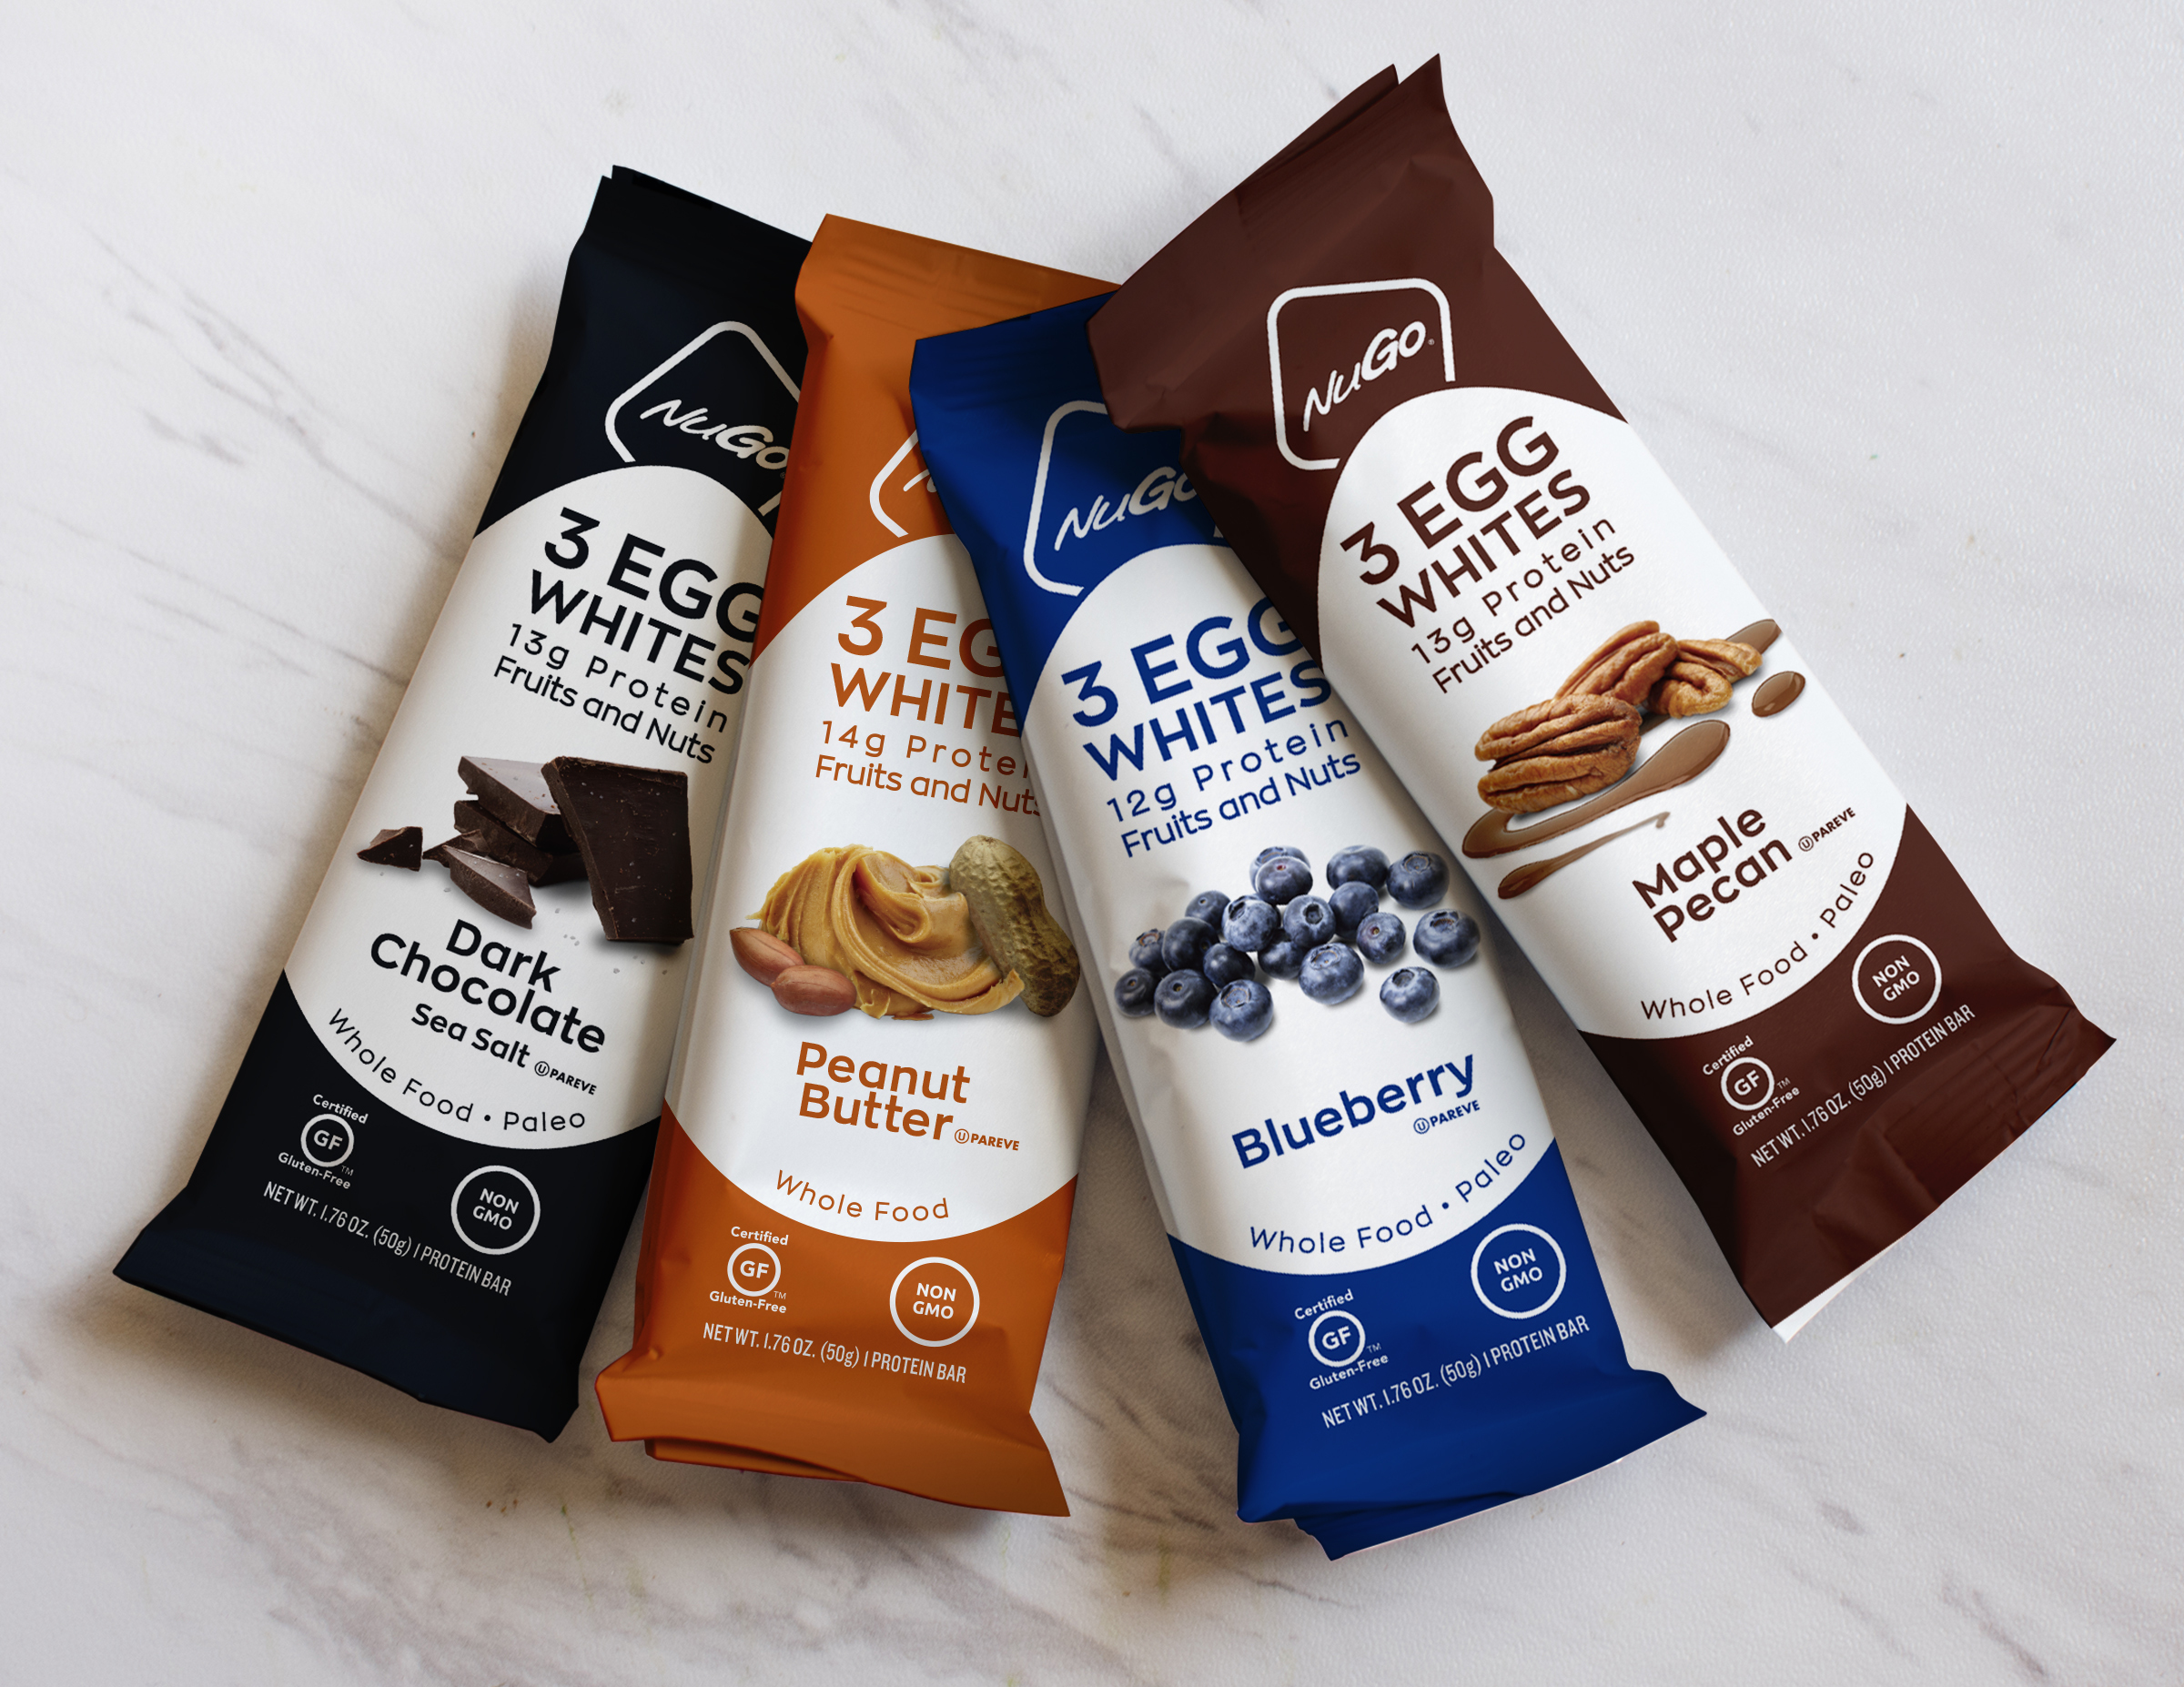 NuGo Nutrition Launches Egg White Protein Bars